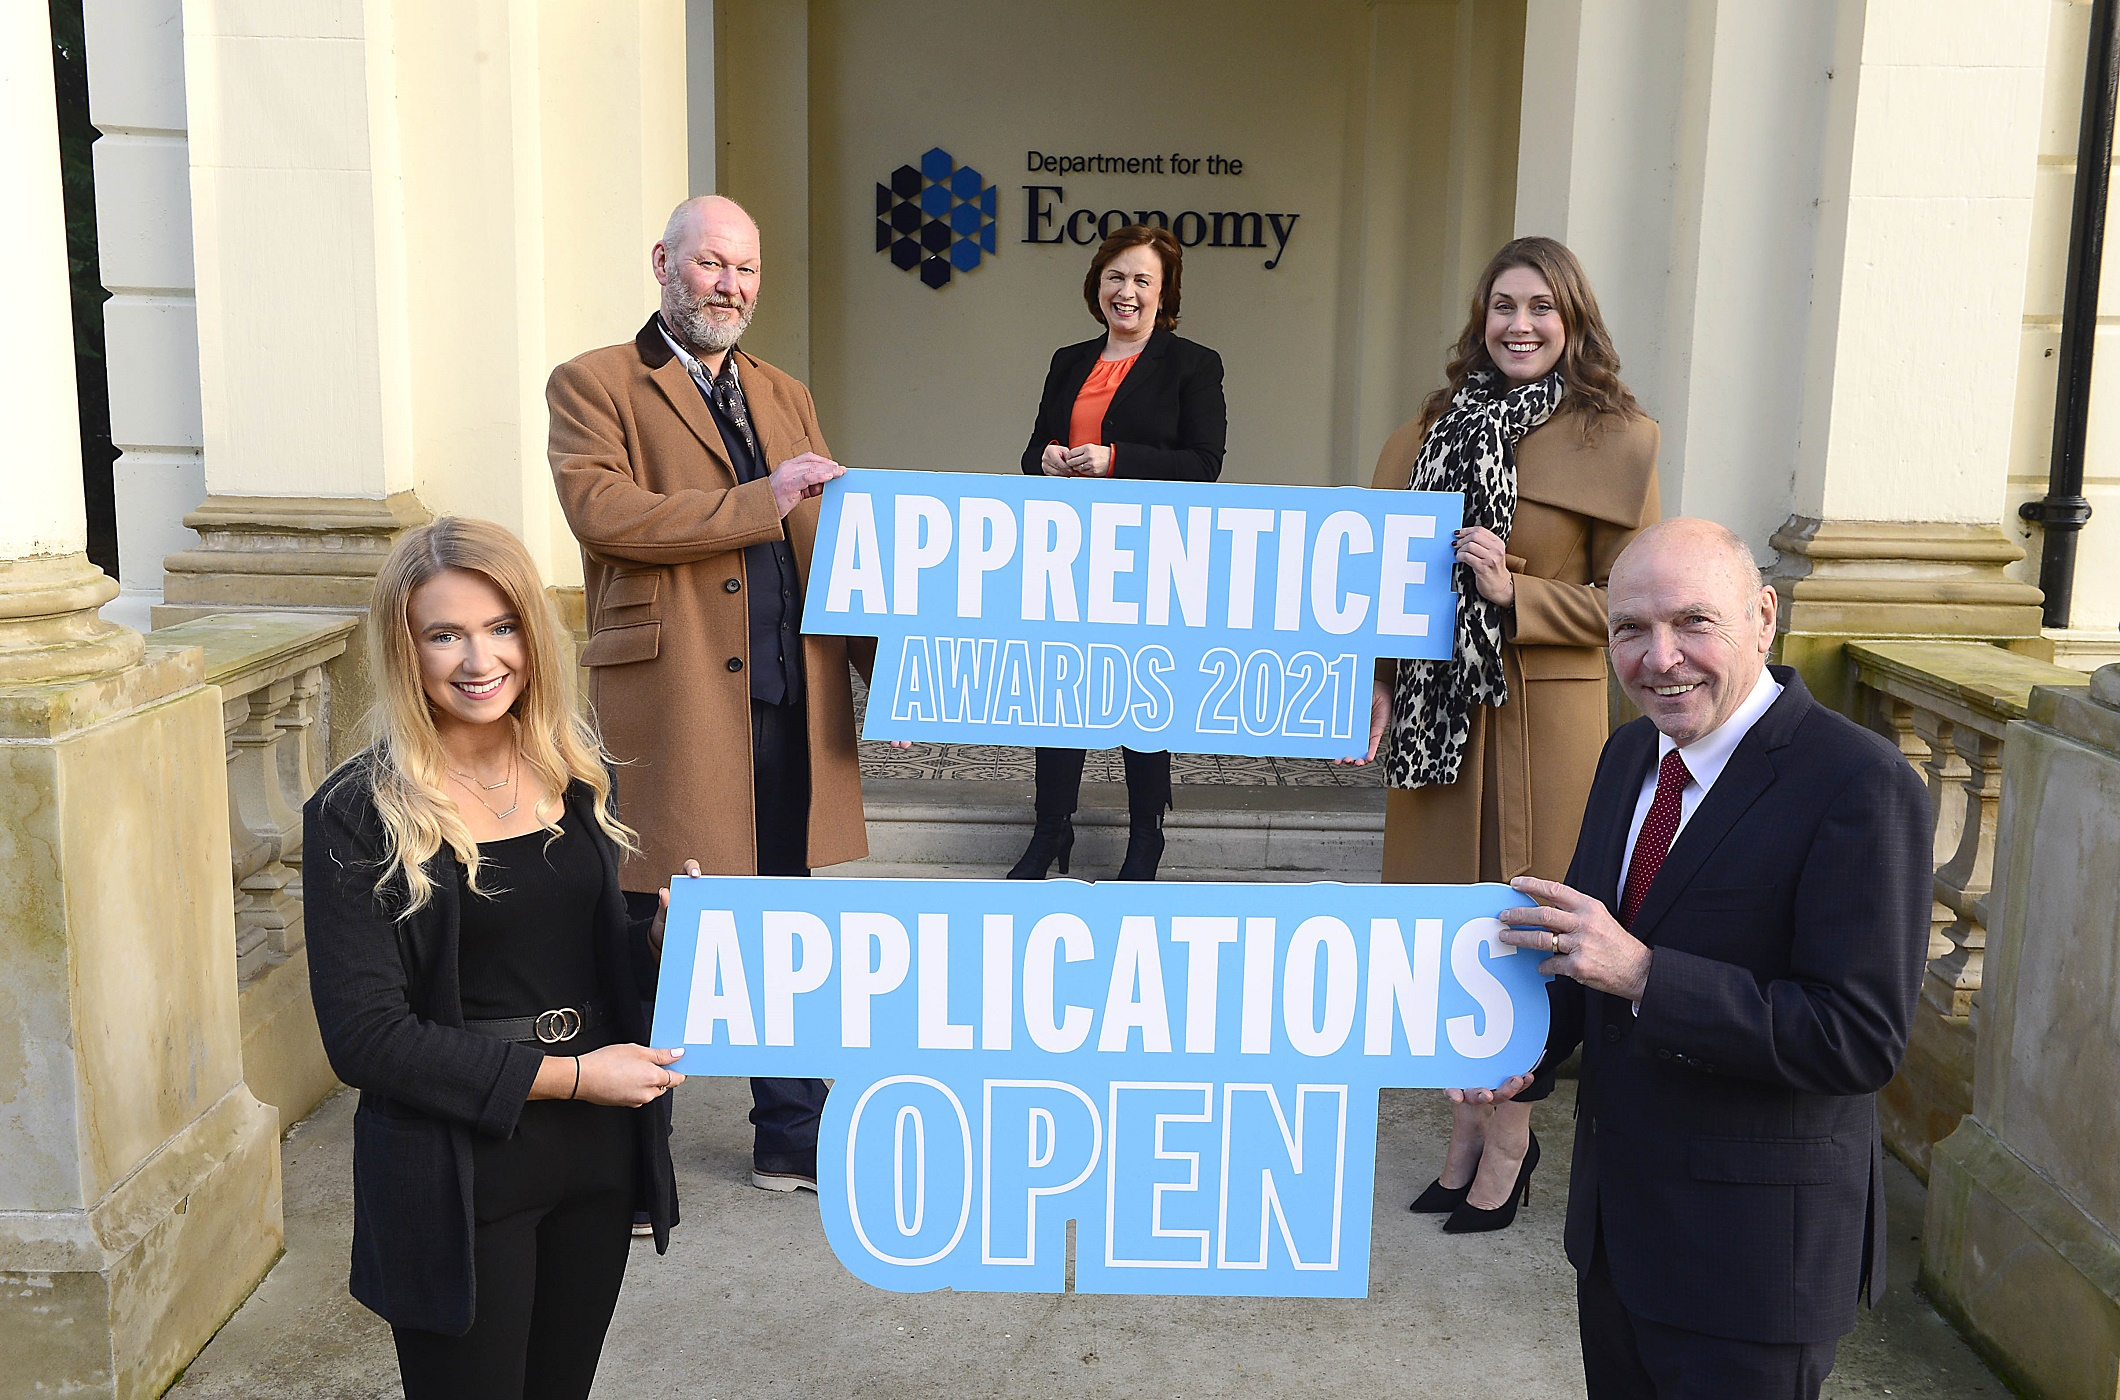 Launch of NI 2021 Apprenticeship Awards pic - Dodds launches NI Apprenticeship Awards 2021 - Newry apprentice